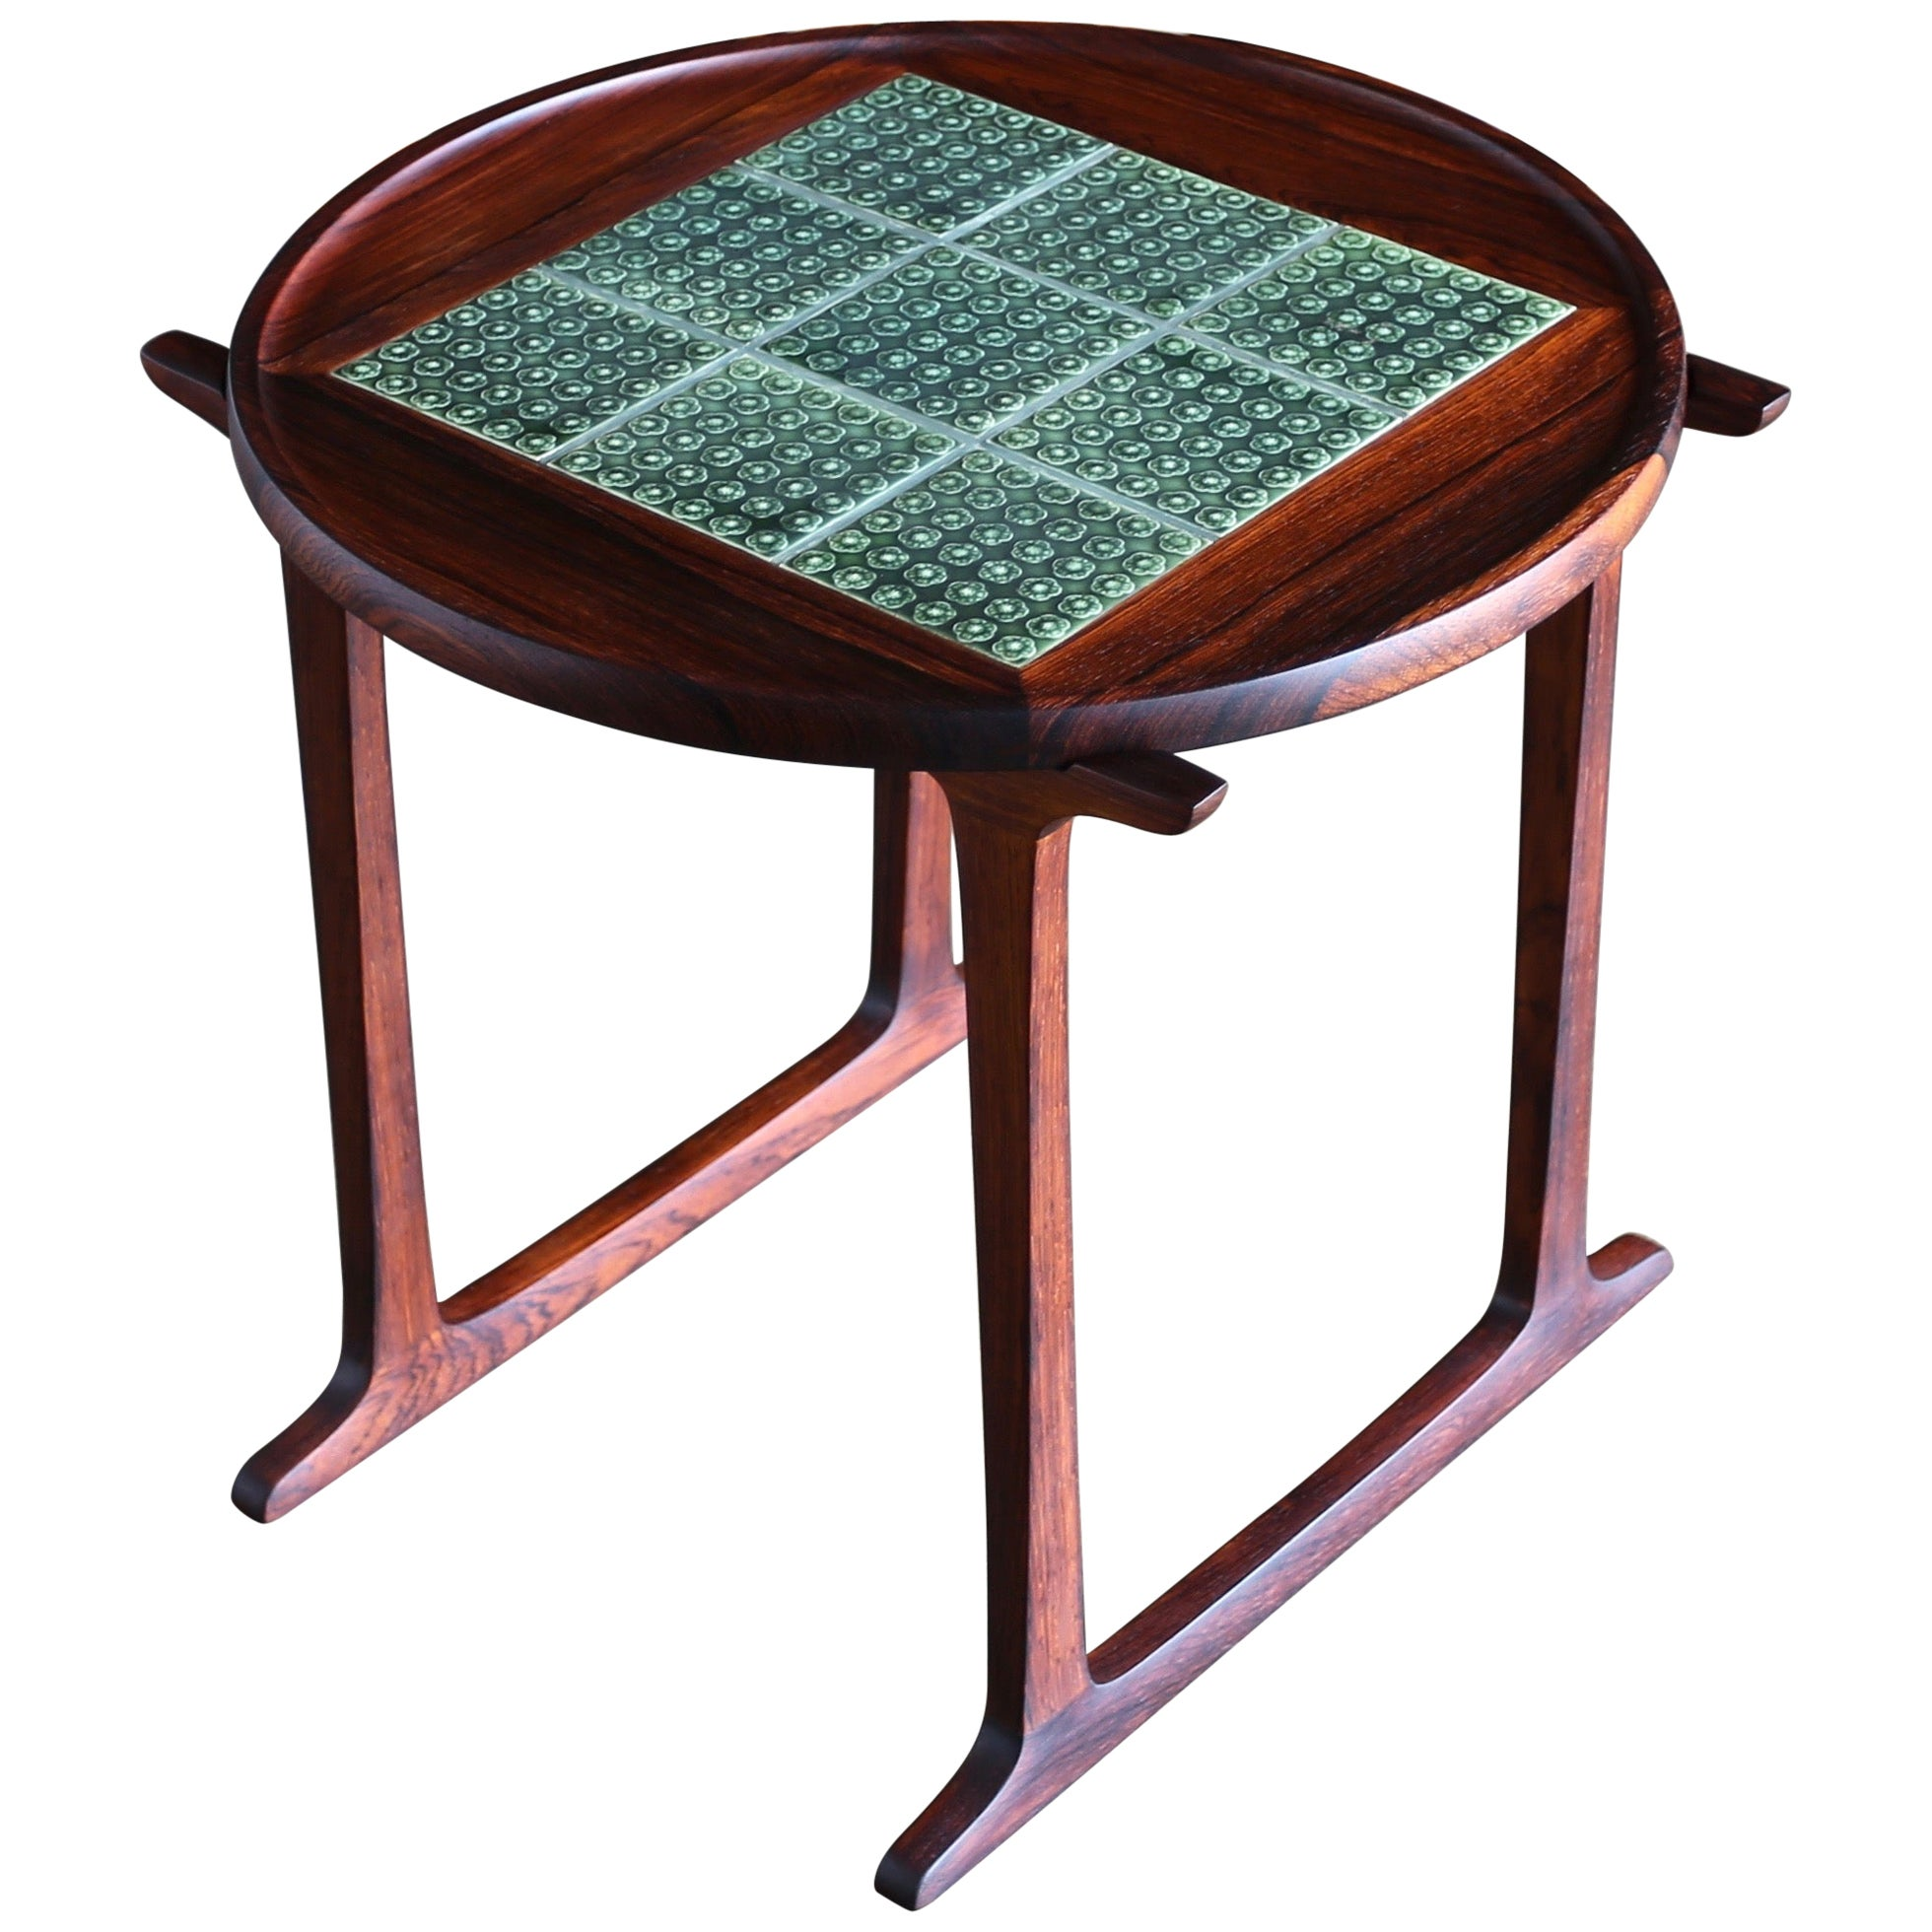 Jens Quistgaard Rosewood & Tile Side Table for Richard Nissen, circa 1966